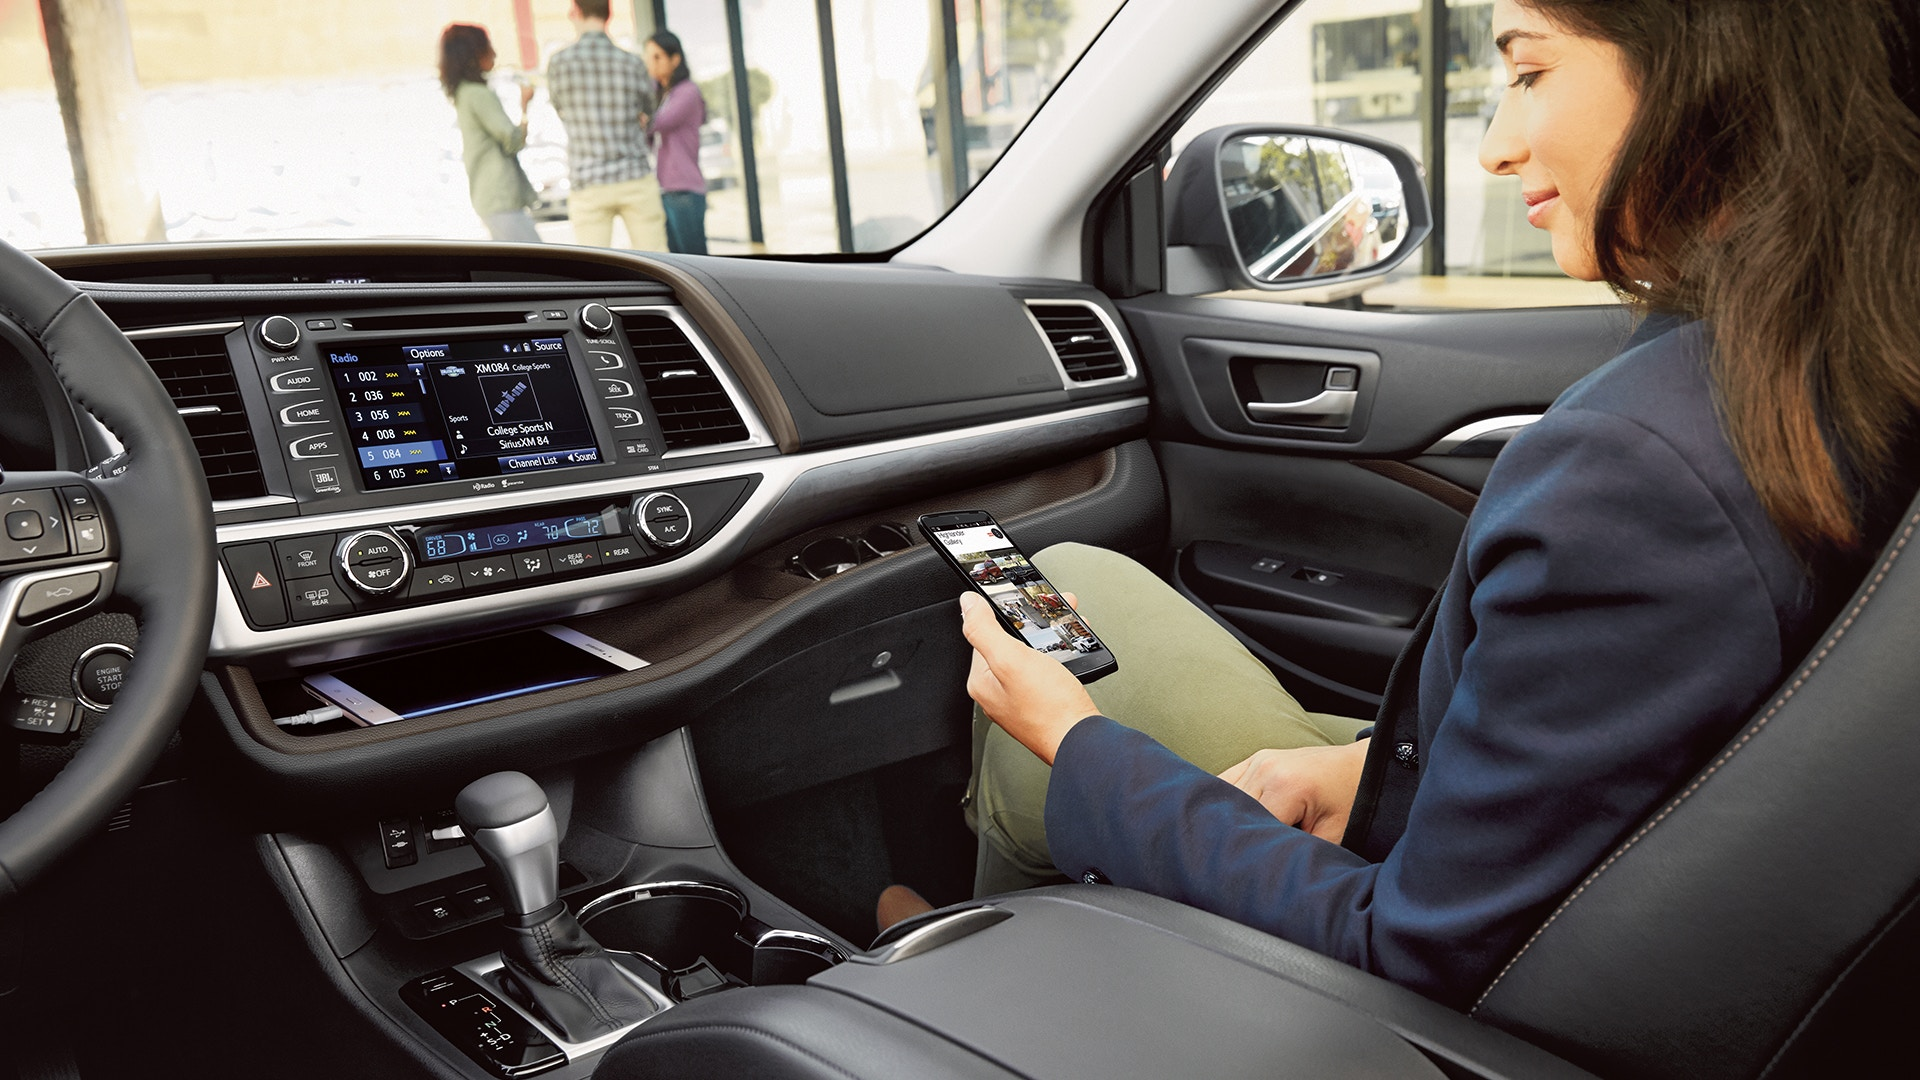 High-Tech Options in the Highlander